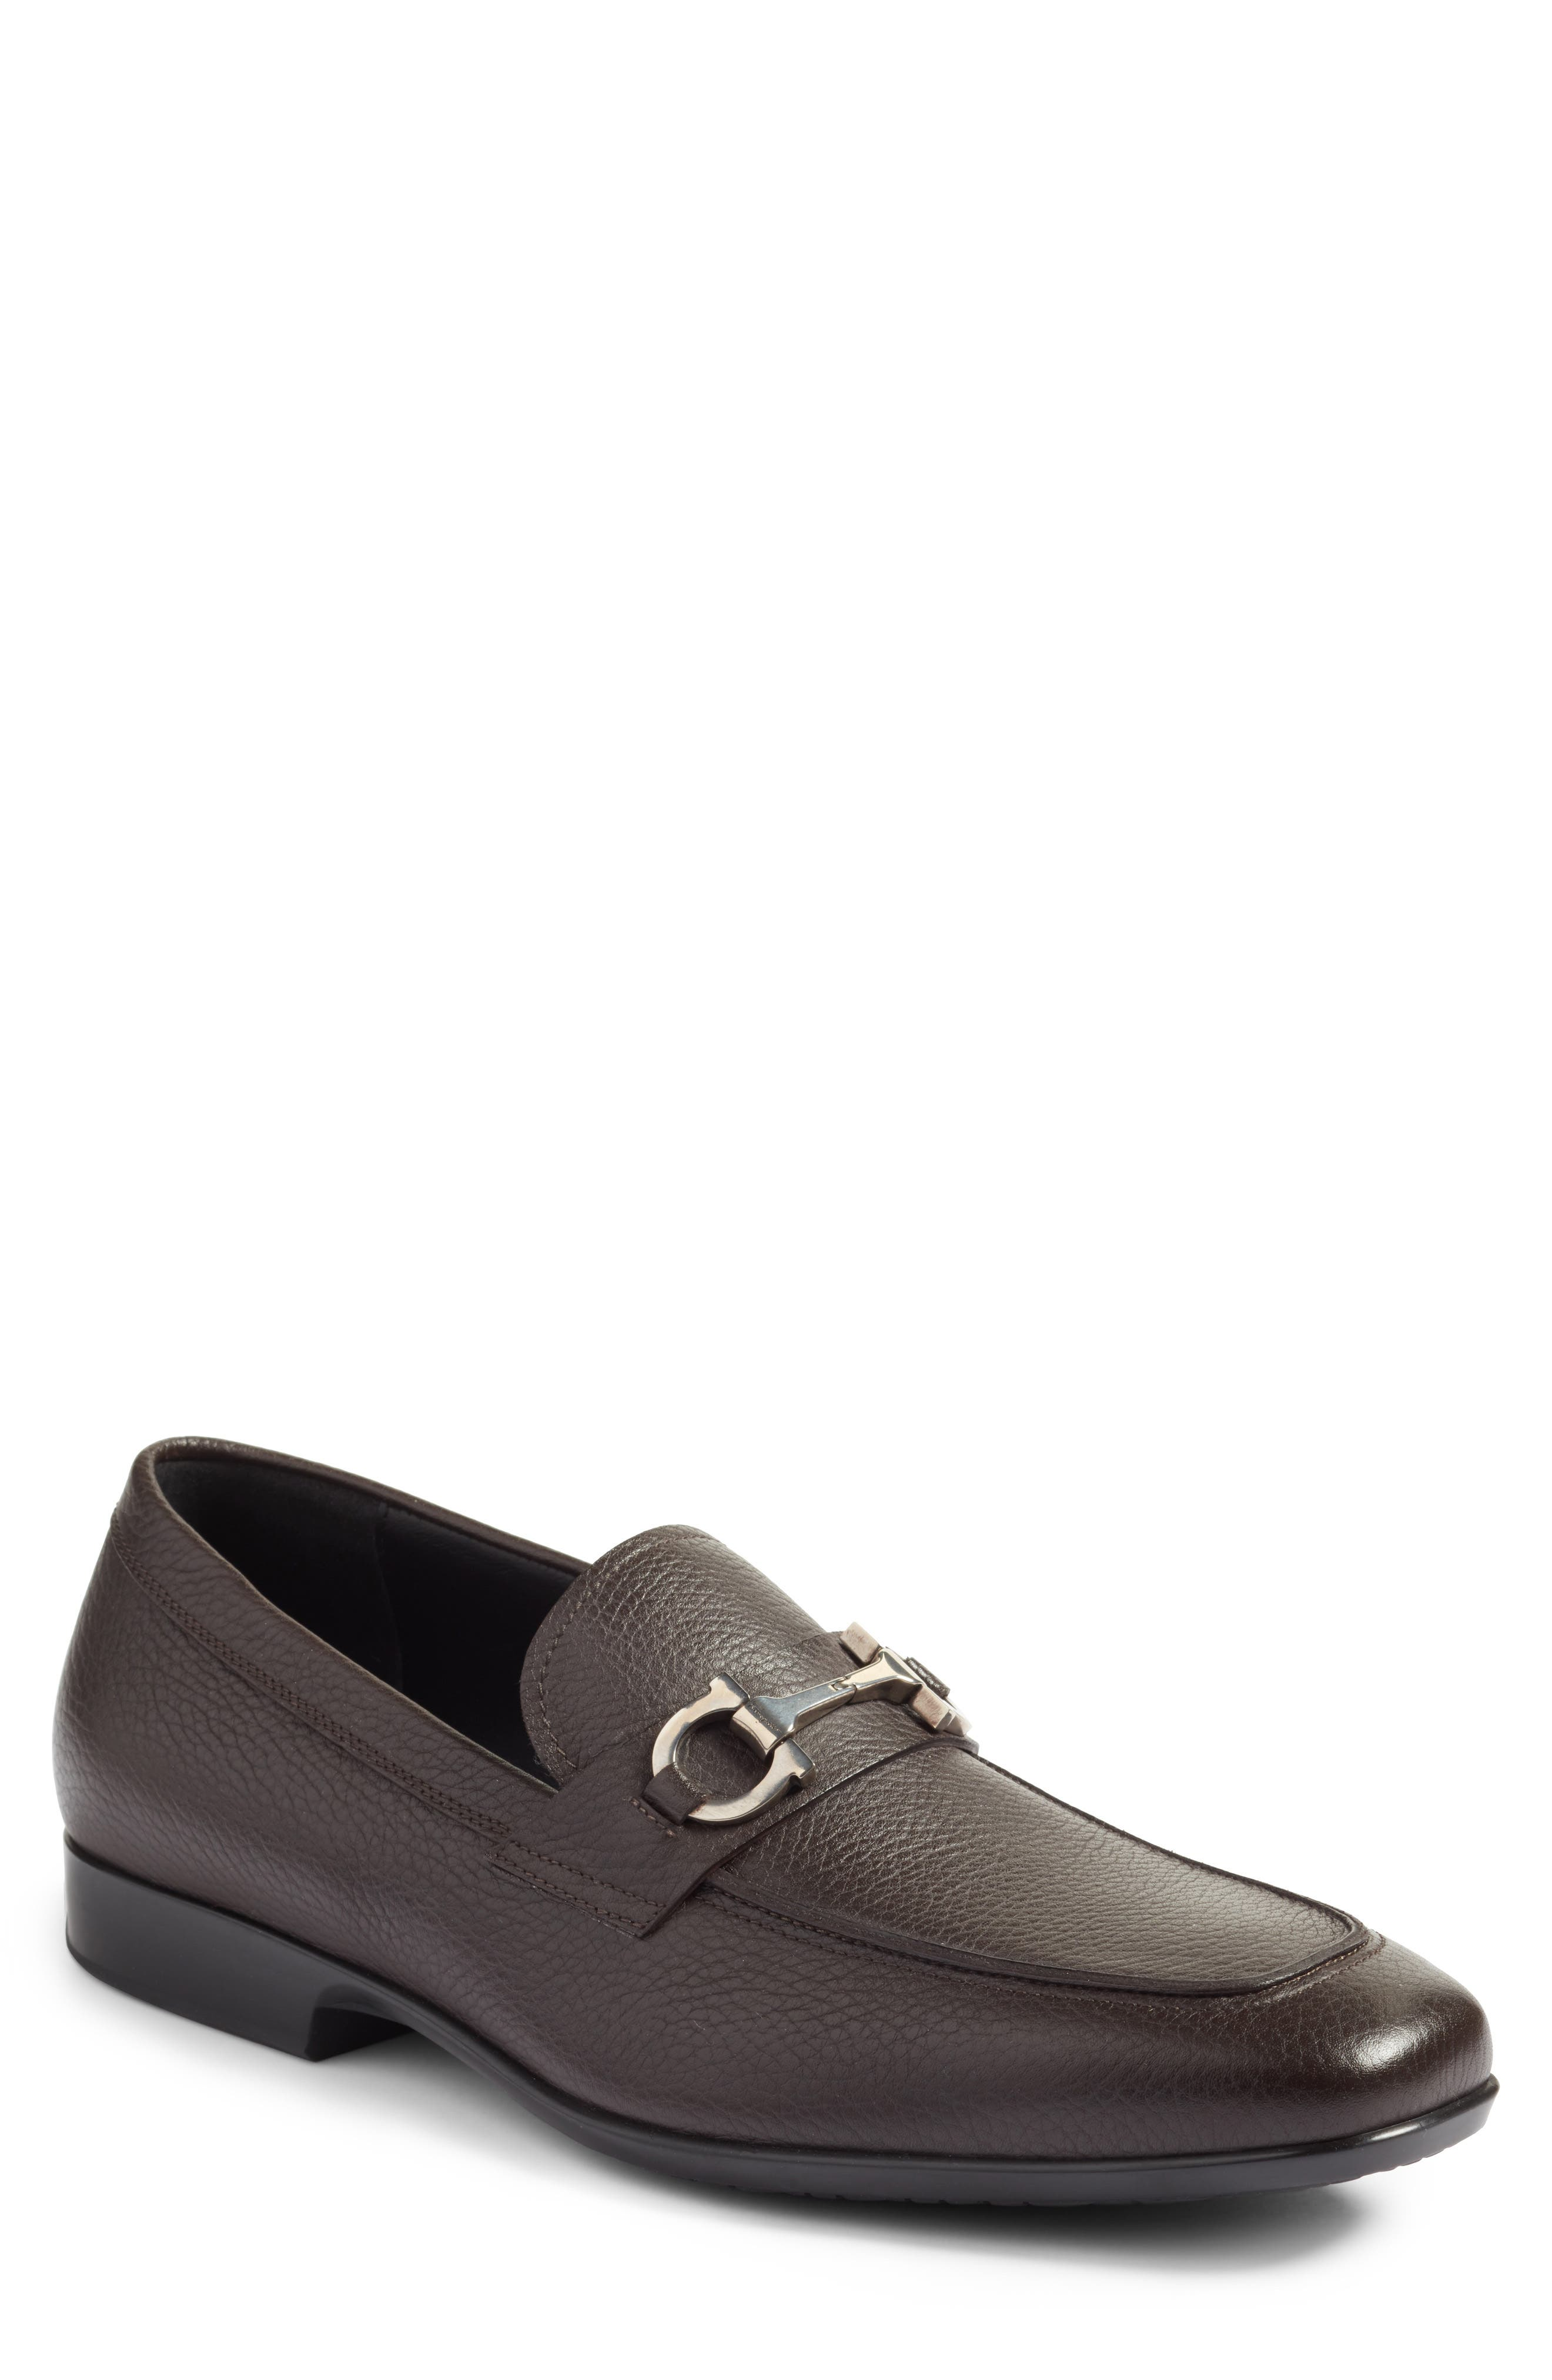 Salvatore Ferragamo Dandy Bit Loafer (Men)